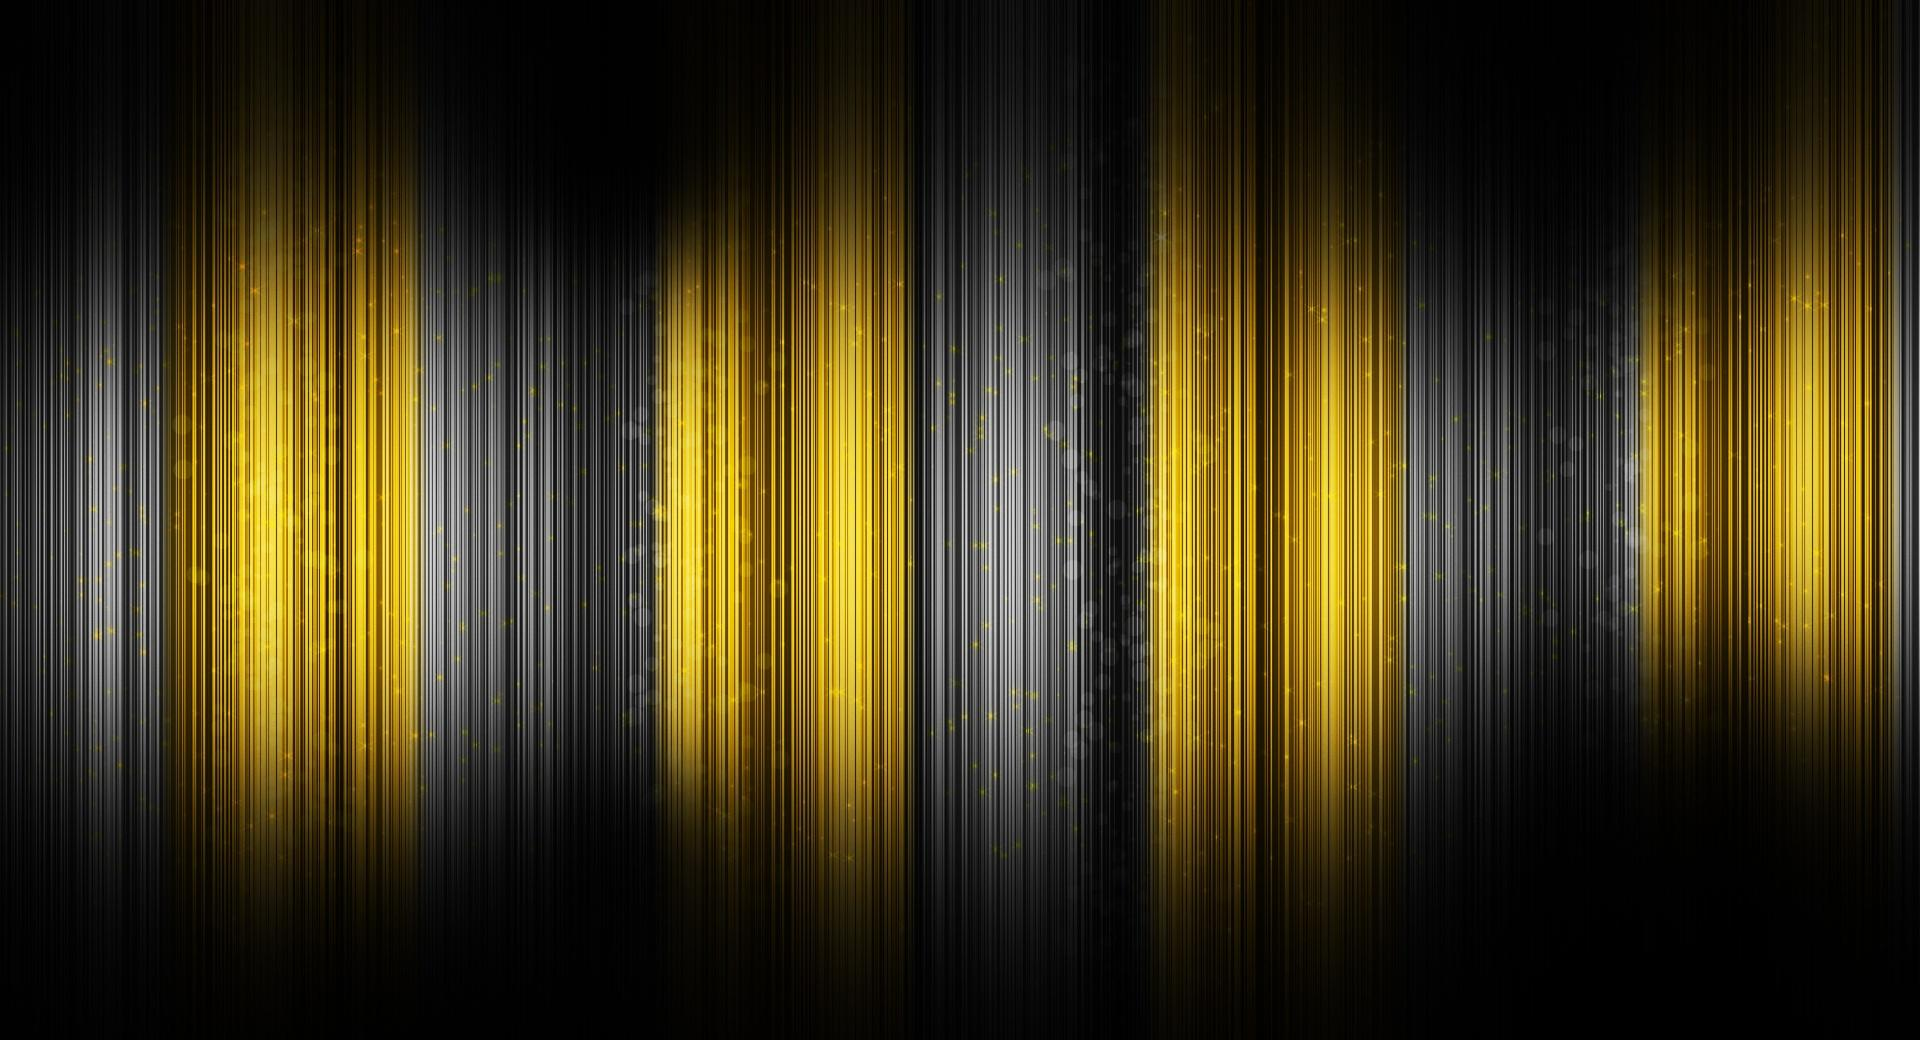 Black And Yellow Abstract wallpapers HD quality